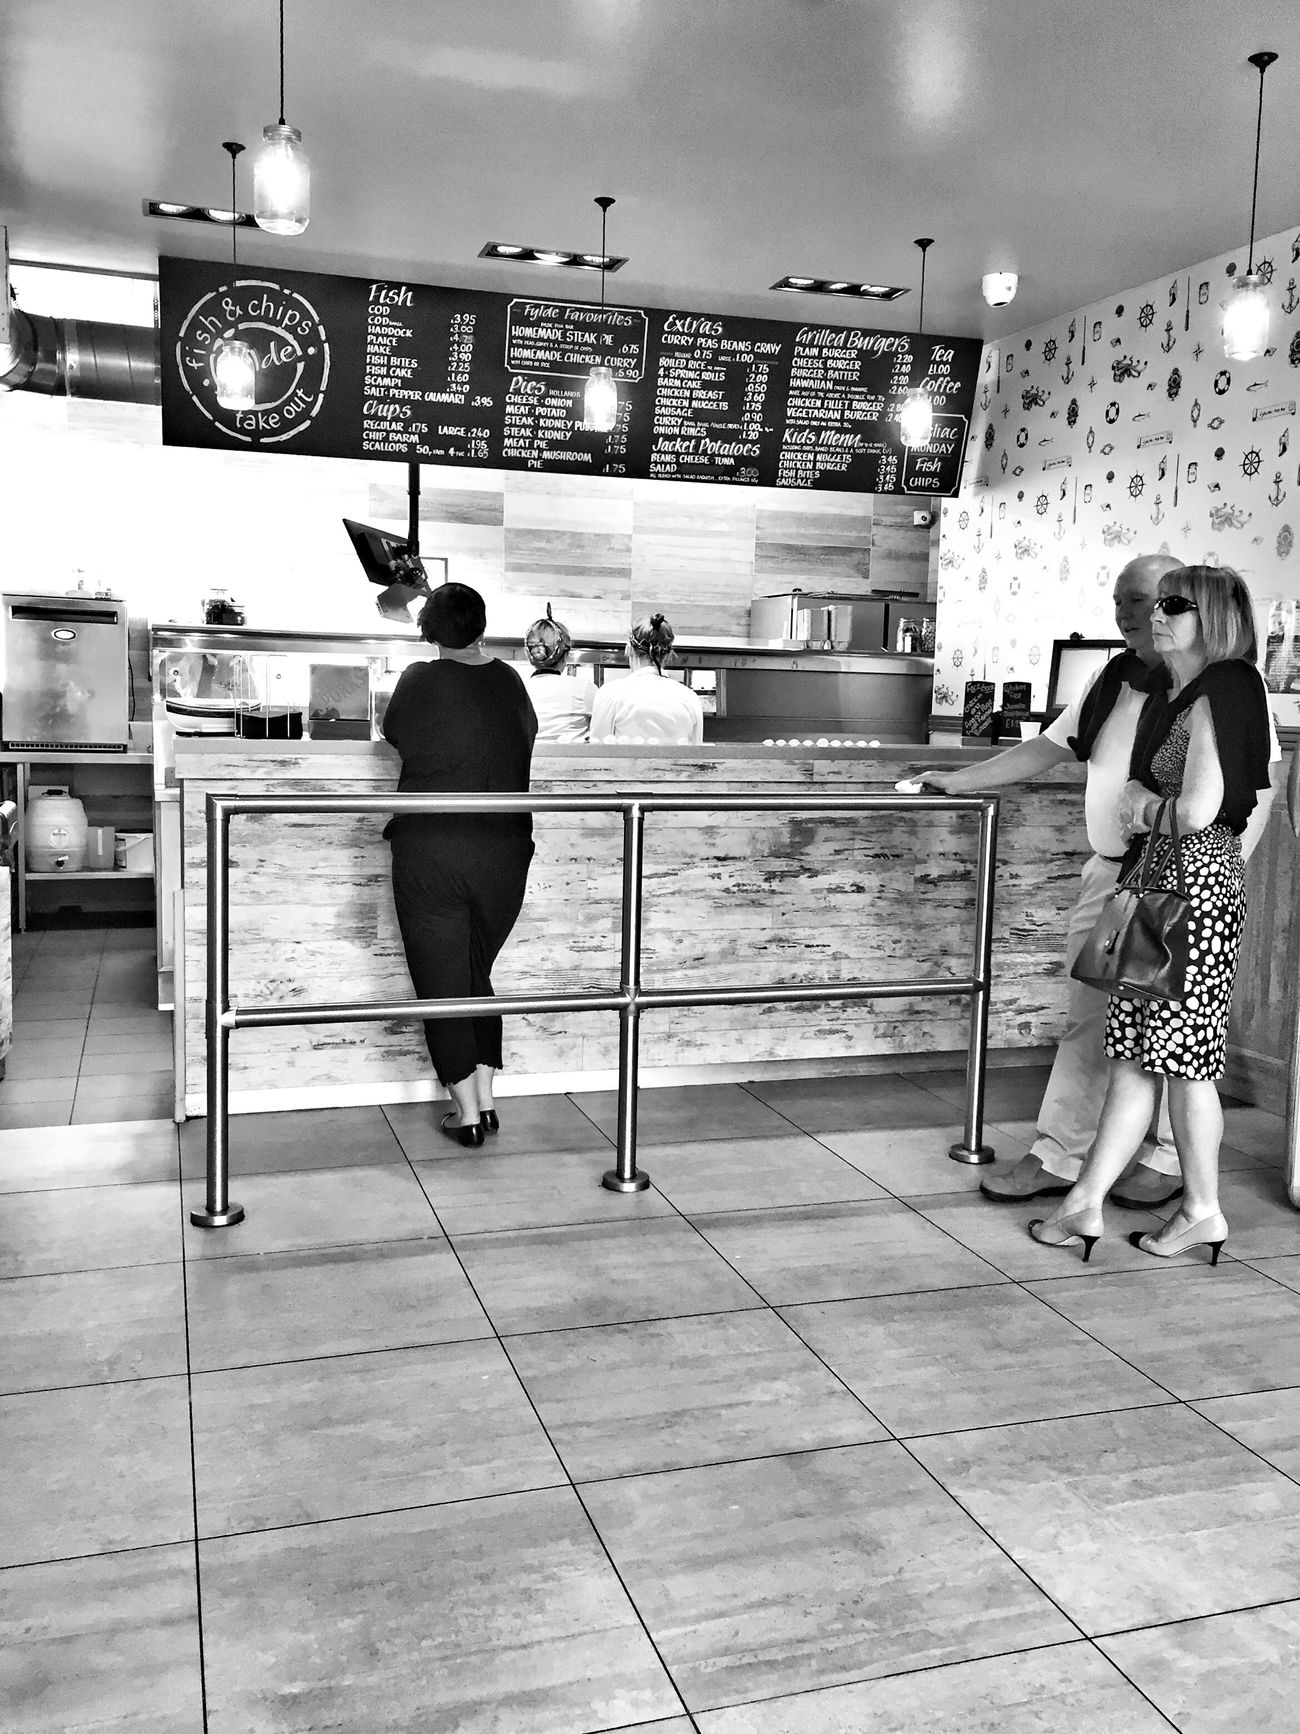 Full Length Two People Real People Illuminated Standing Women Men Lifestyles Night Indoors  City Adult People JoMo Photo IPhoneography Black & White Black And White Blackandwhite Birkdale Streetphotography Street Photography Streetphoto_bw Chip Shop The Street Photographer - 2017 EyeEm Awards The Street Photographer - 2017 EyeEm Awards